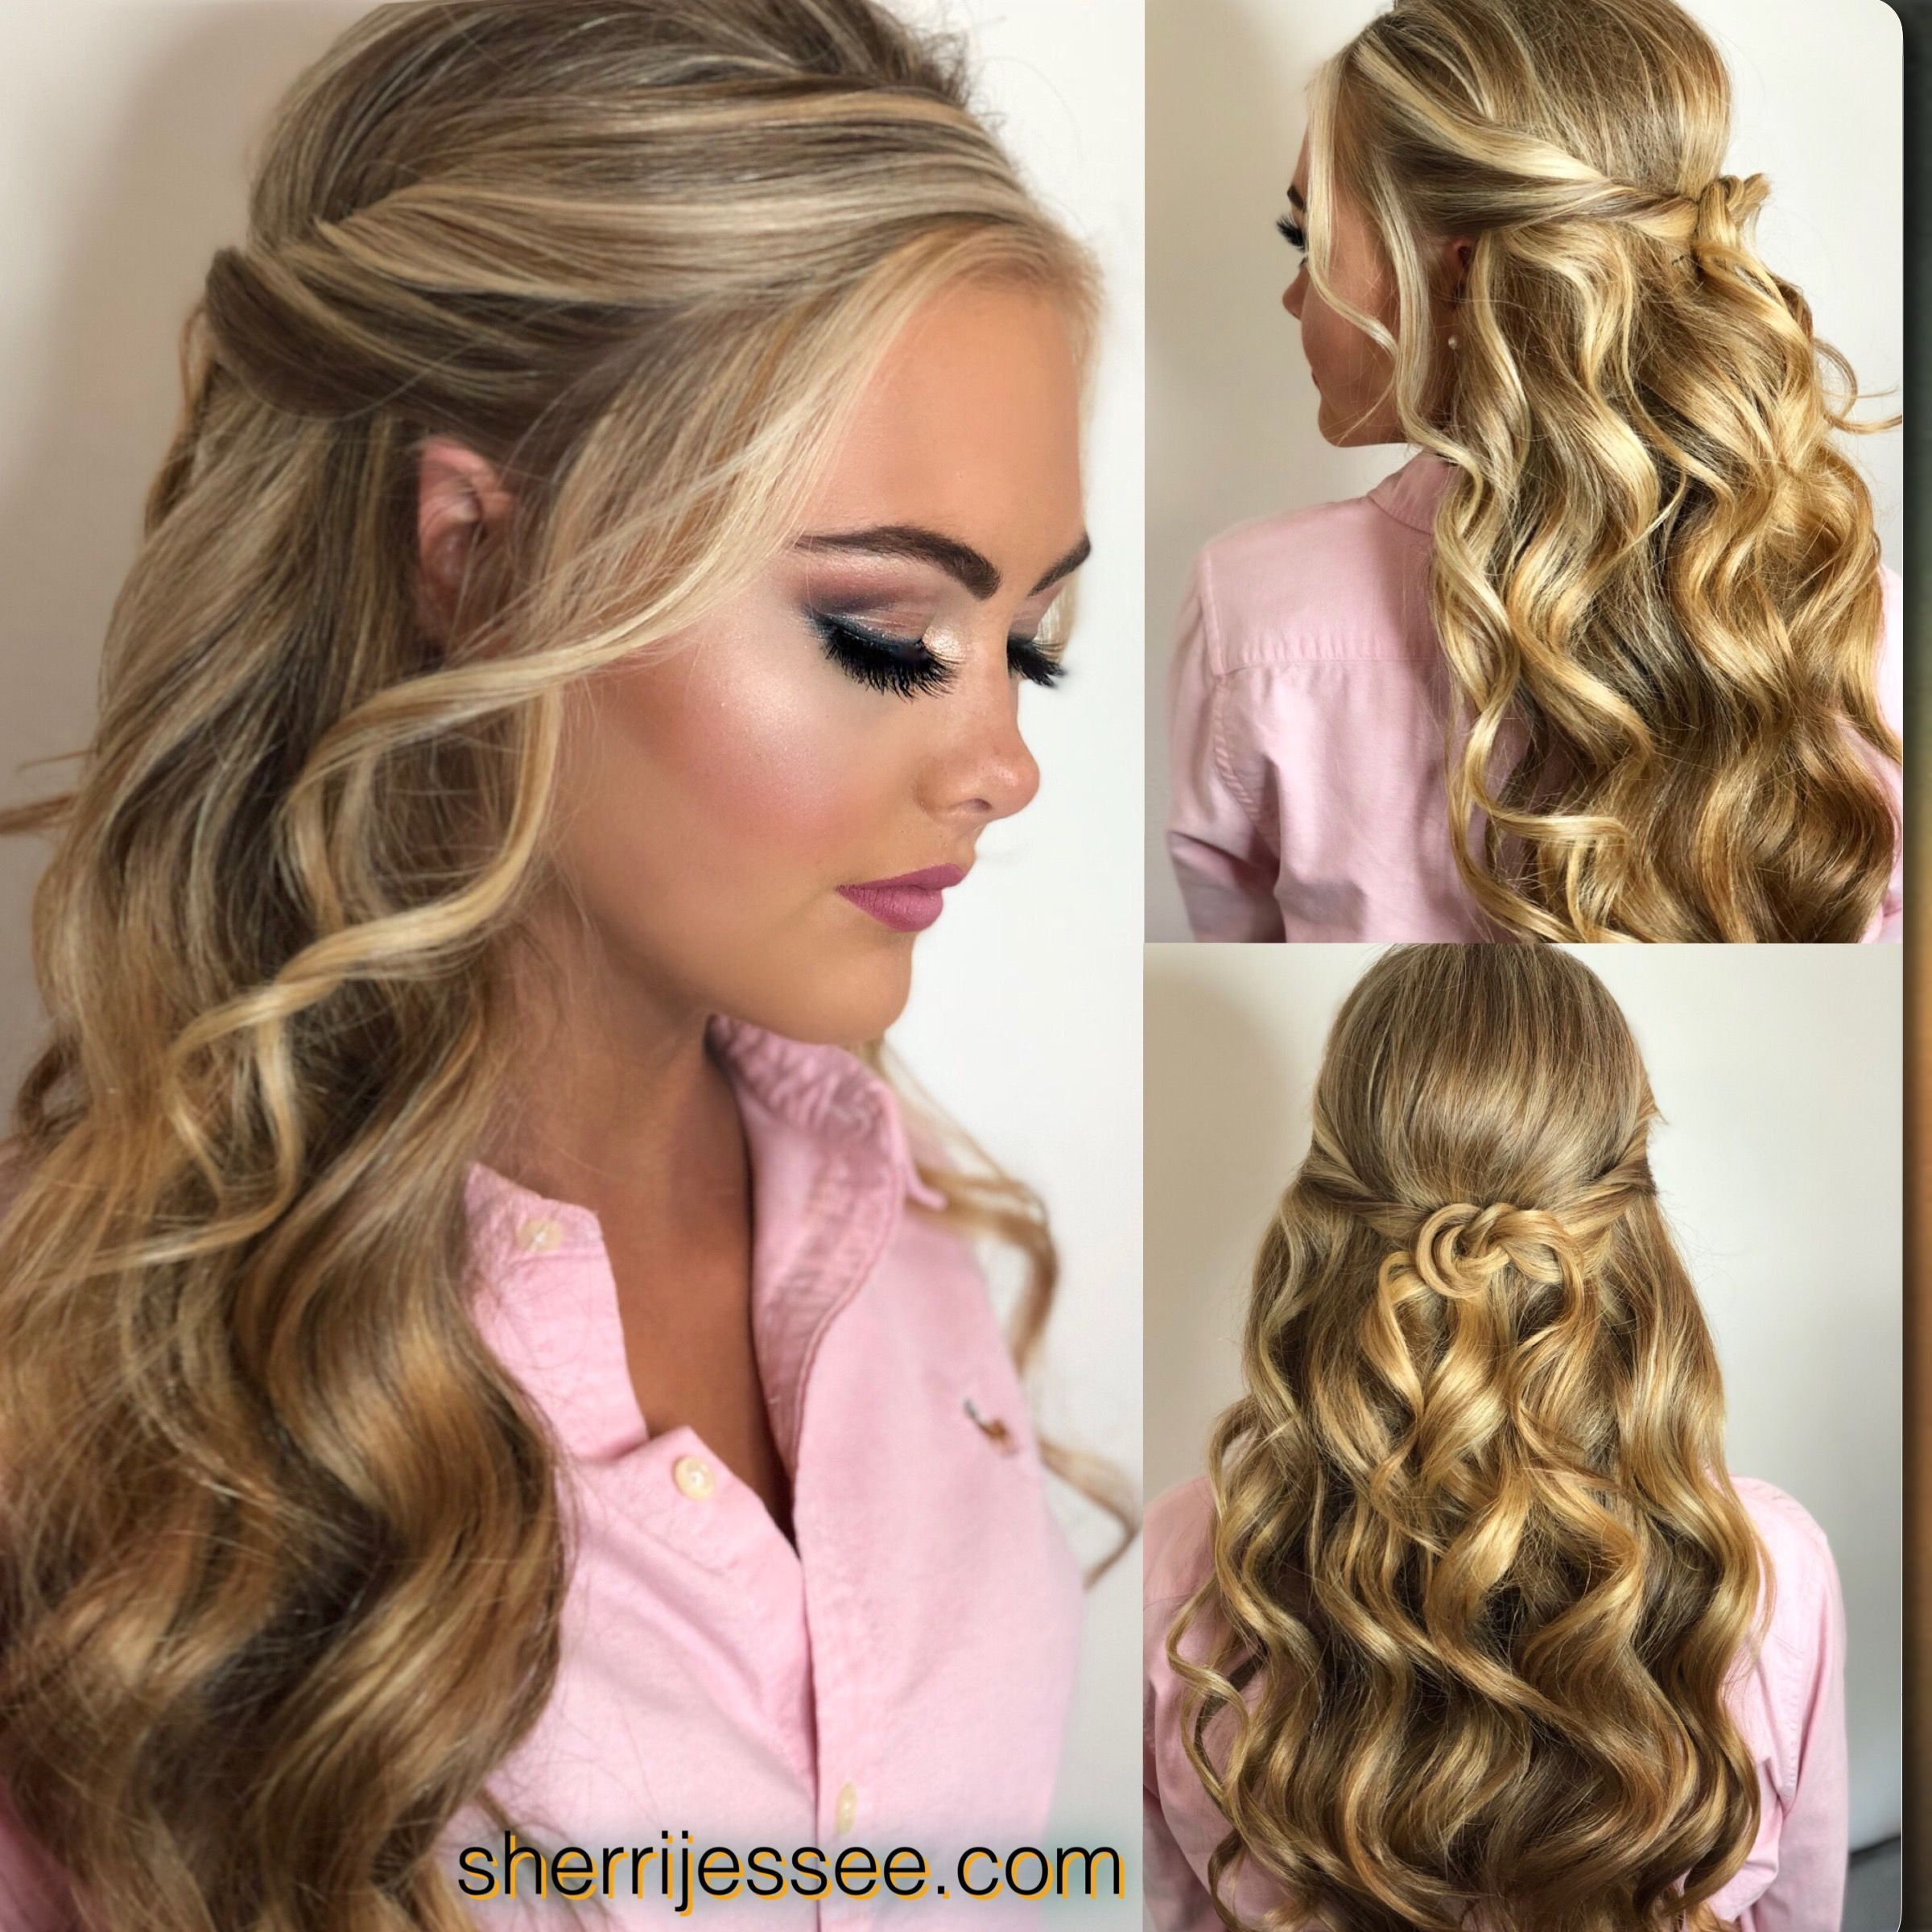 Curly Hairstyles Down Baddie Hair Styles Pageant Hair Prom Hairstyles For Long Hair